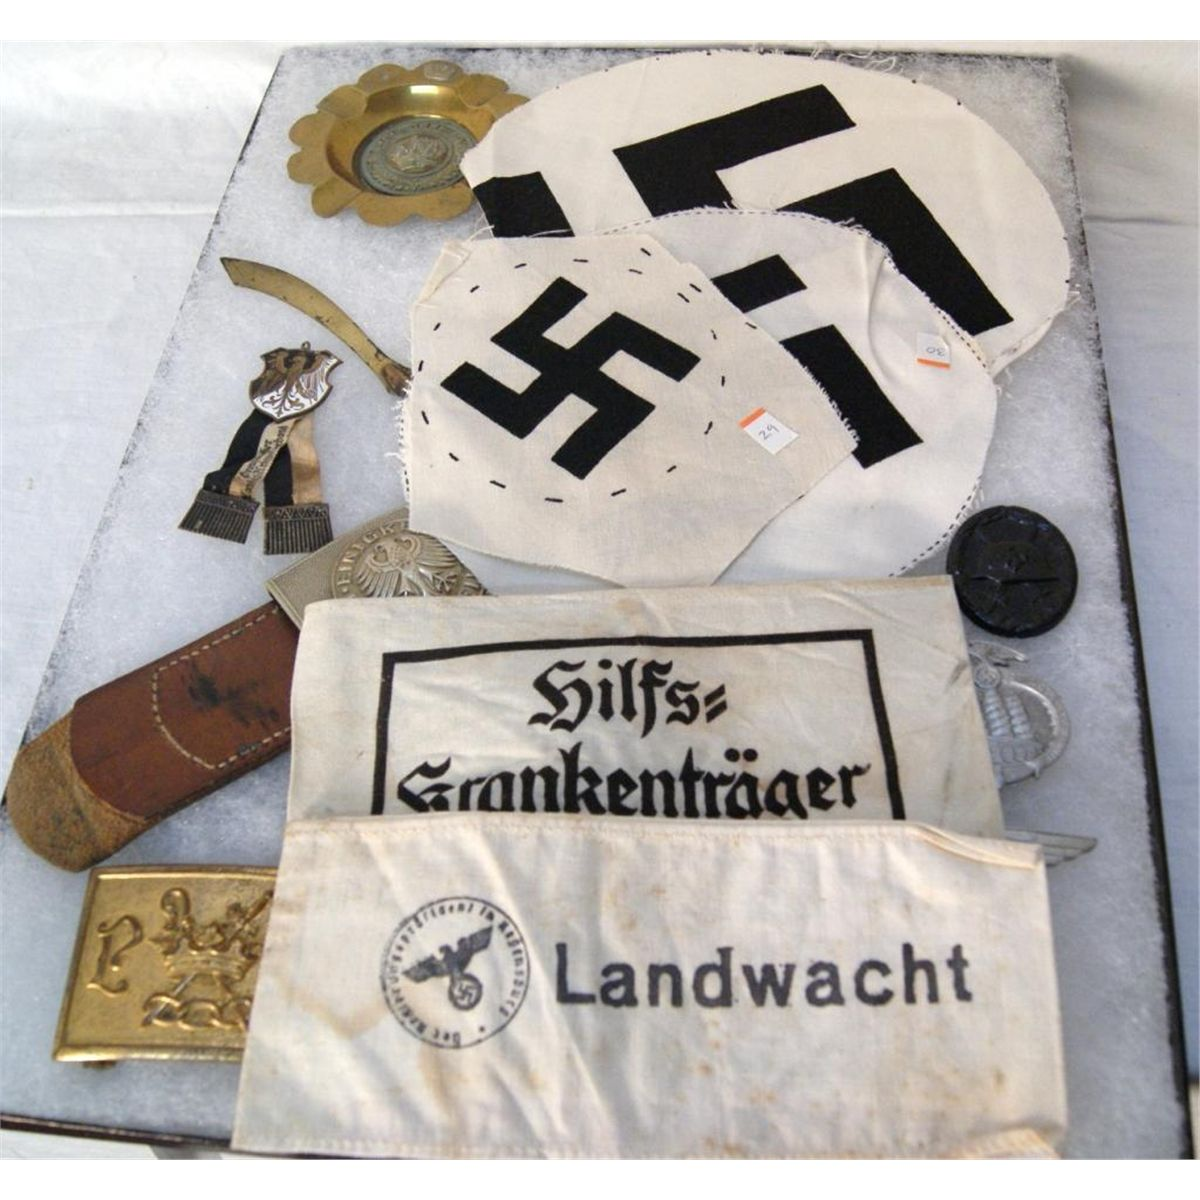 Collection of WWII SS Landwacht memorabilia